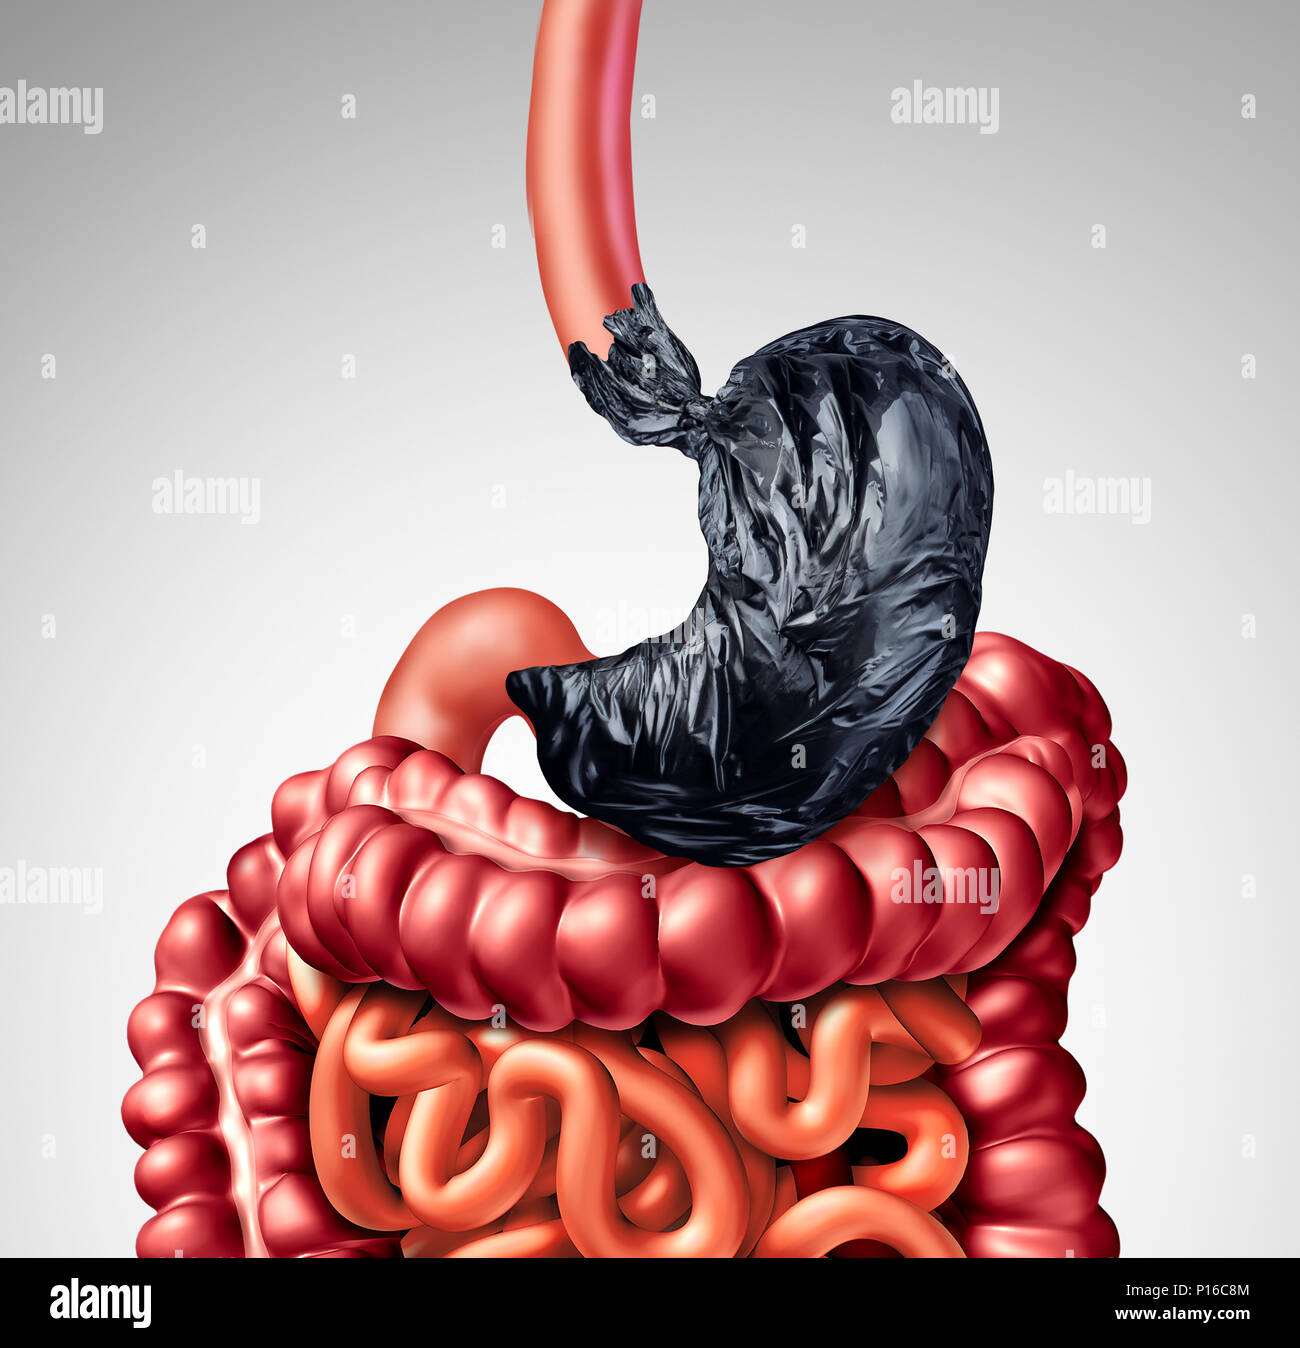 Human Digestion Problem As A Stomach Shaped As A Garbage Bag With